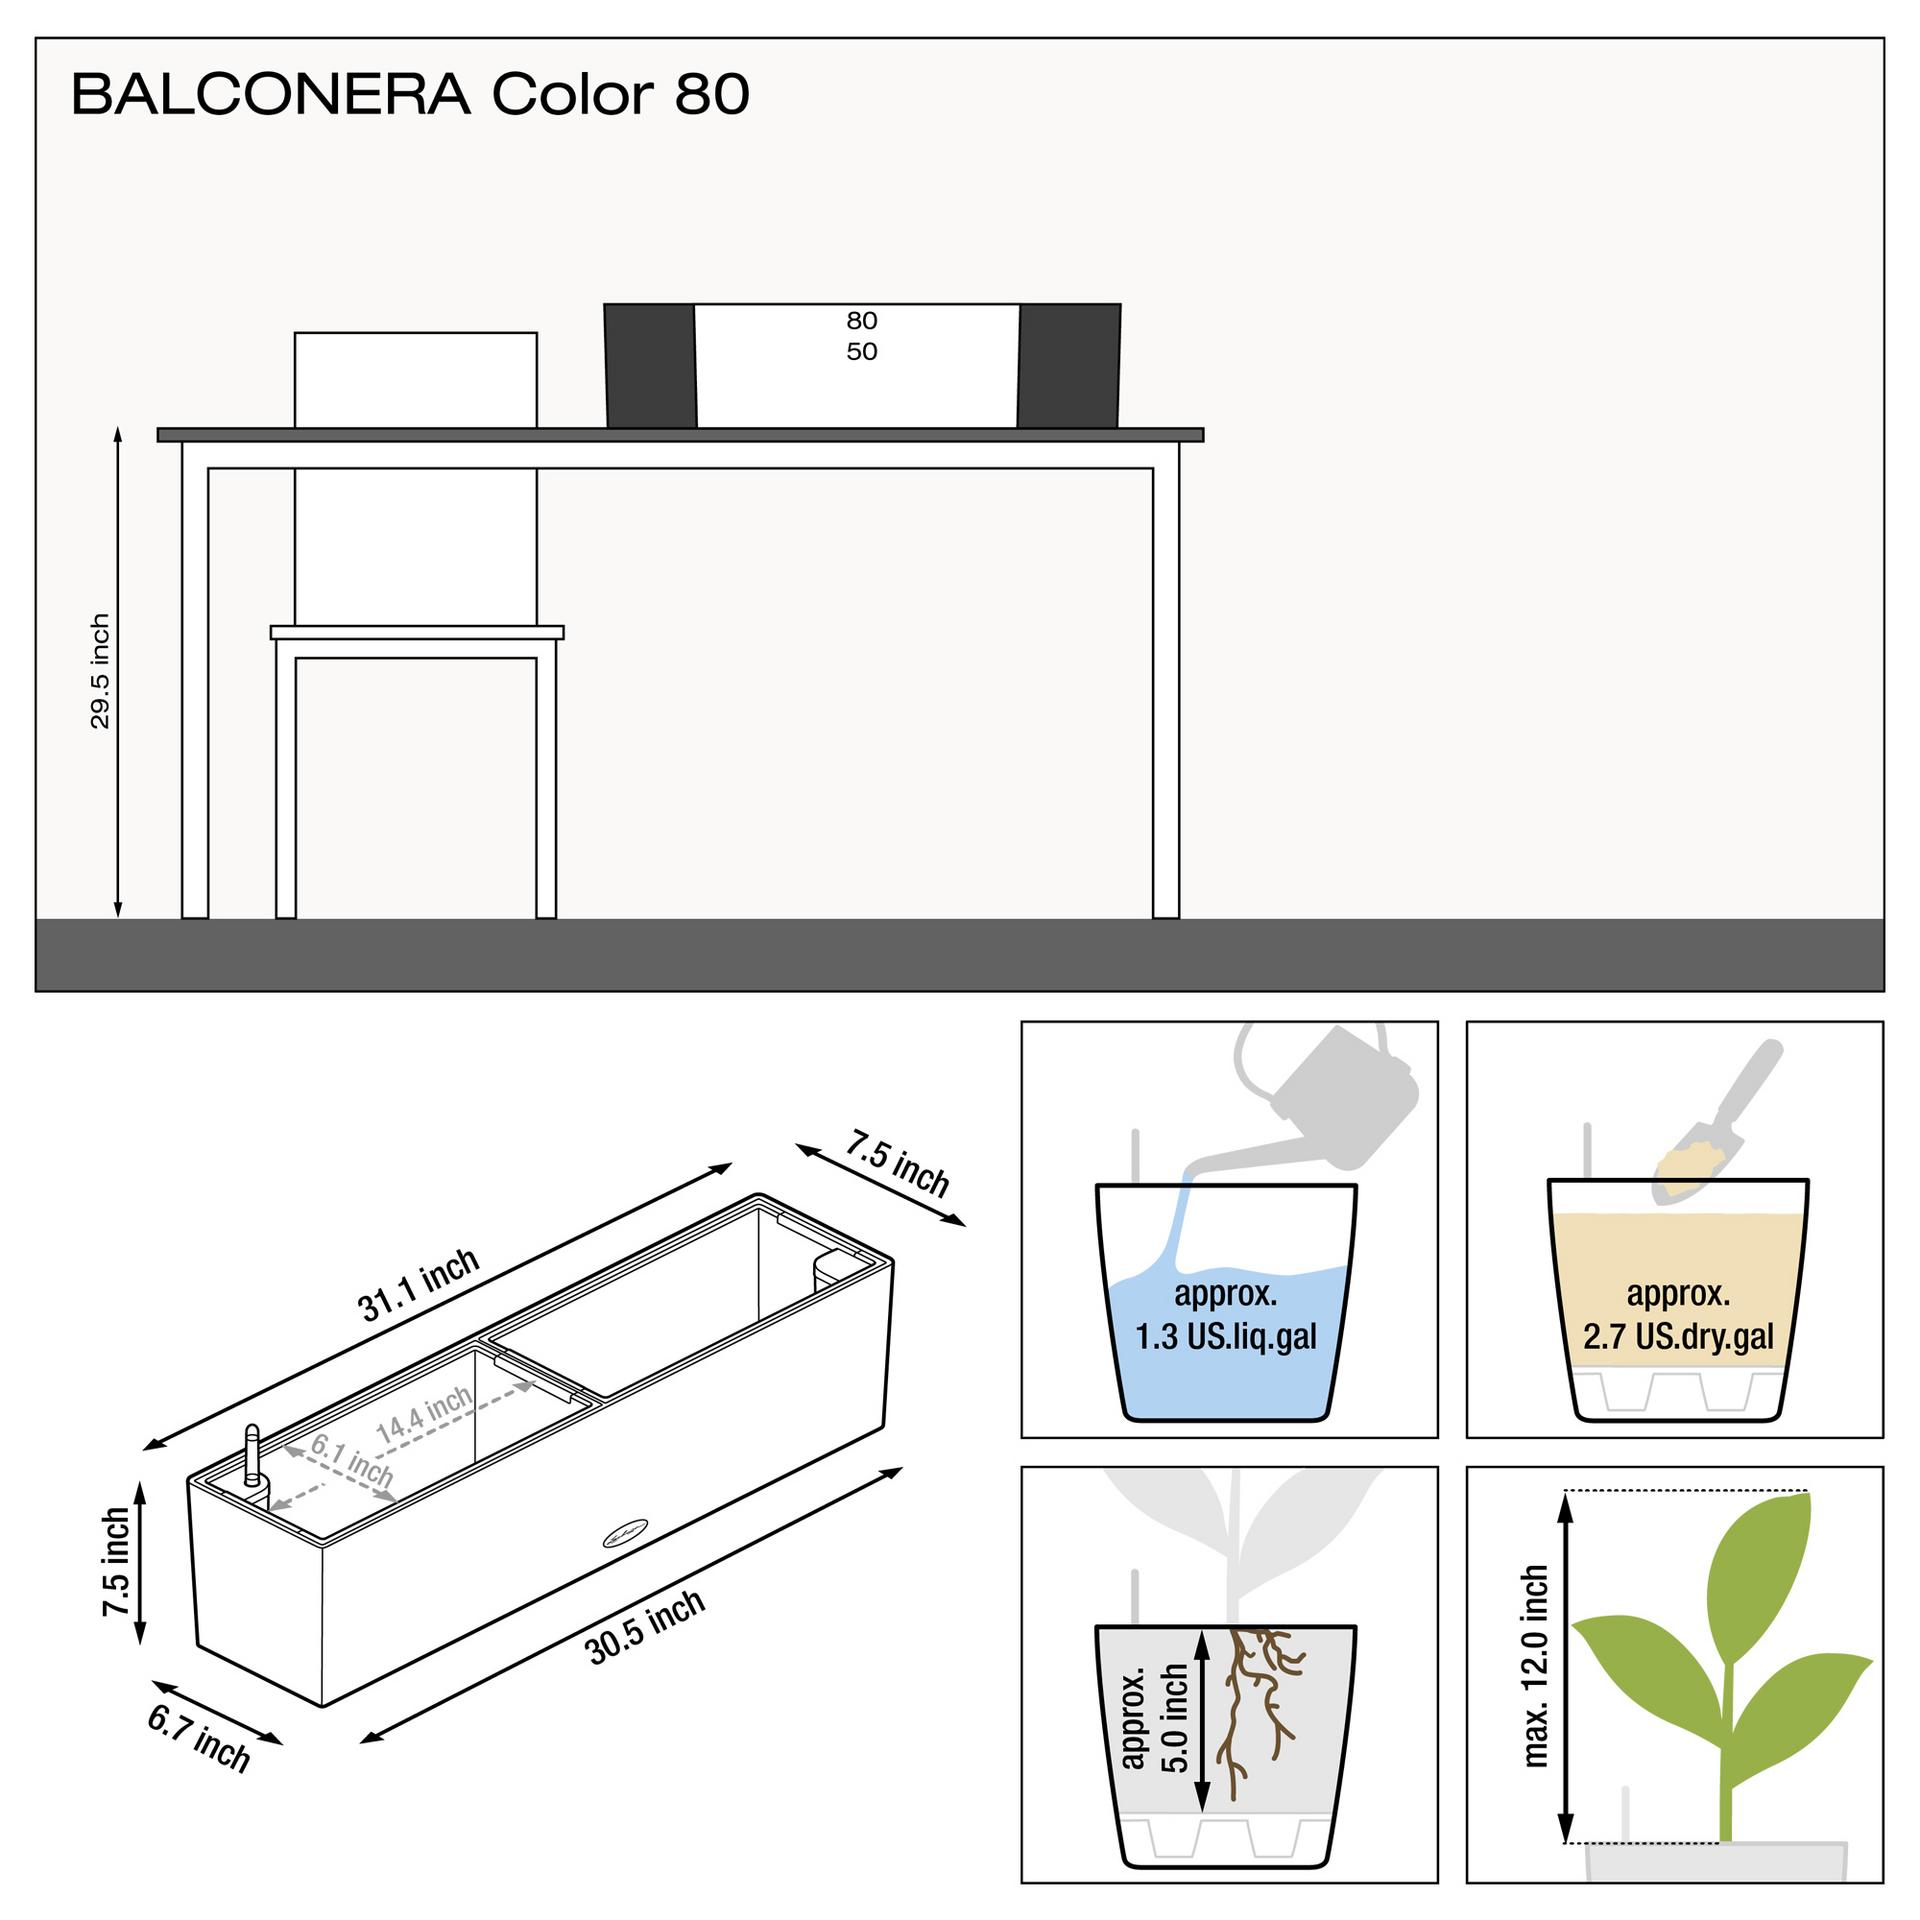 le_balconera-color80_product_addi_nz_us